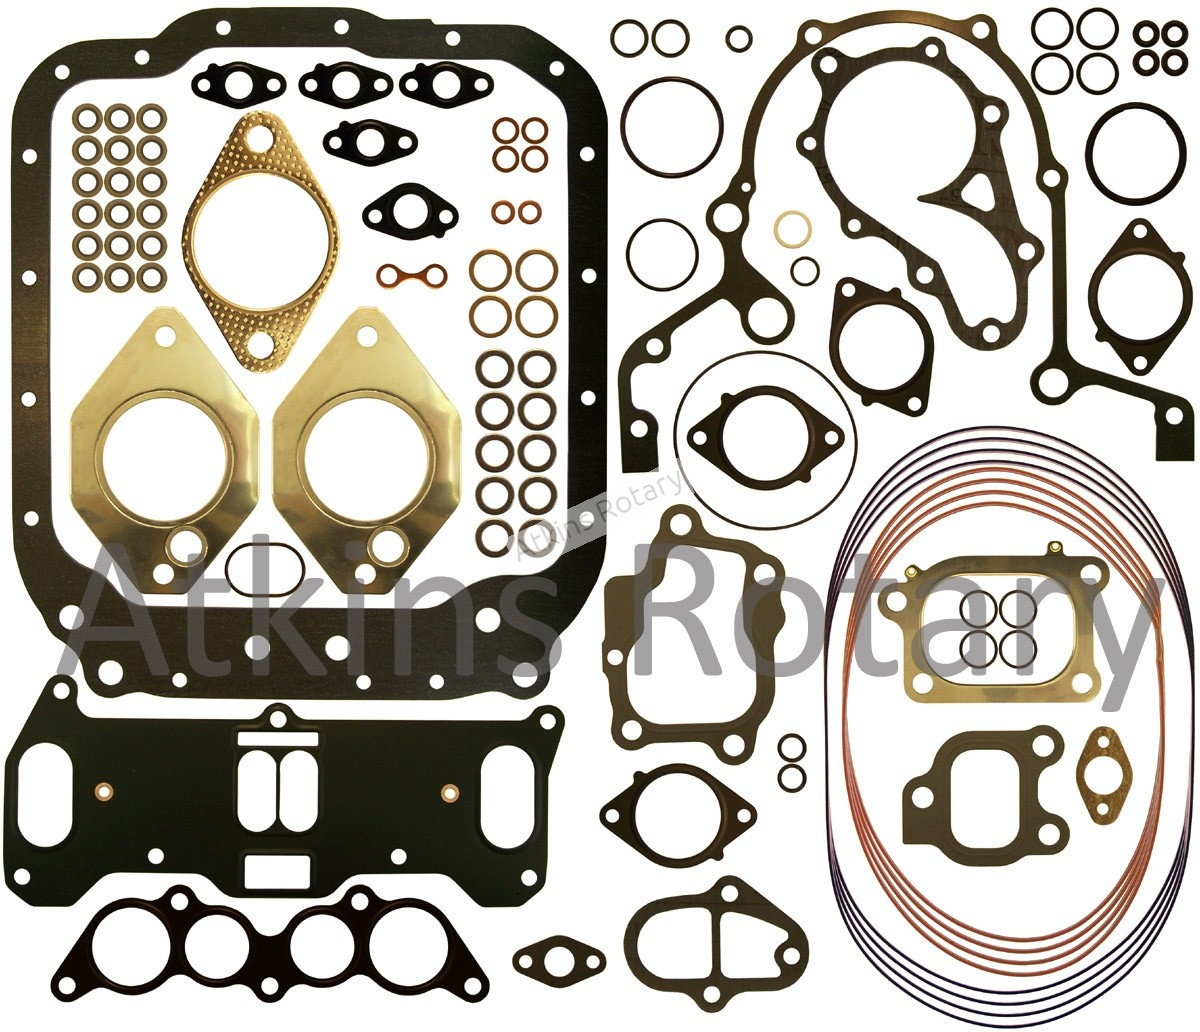 93-95 Rx7 Engine Gasket Kit (8DFE-10-271C)